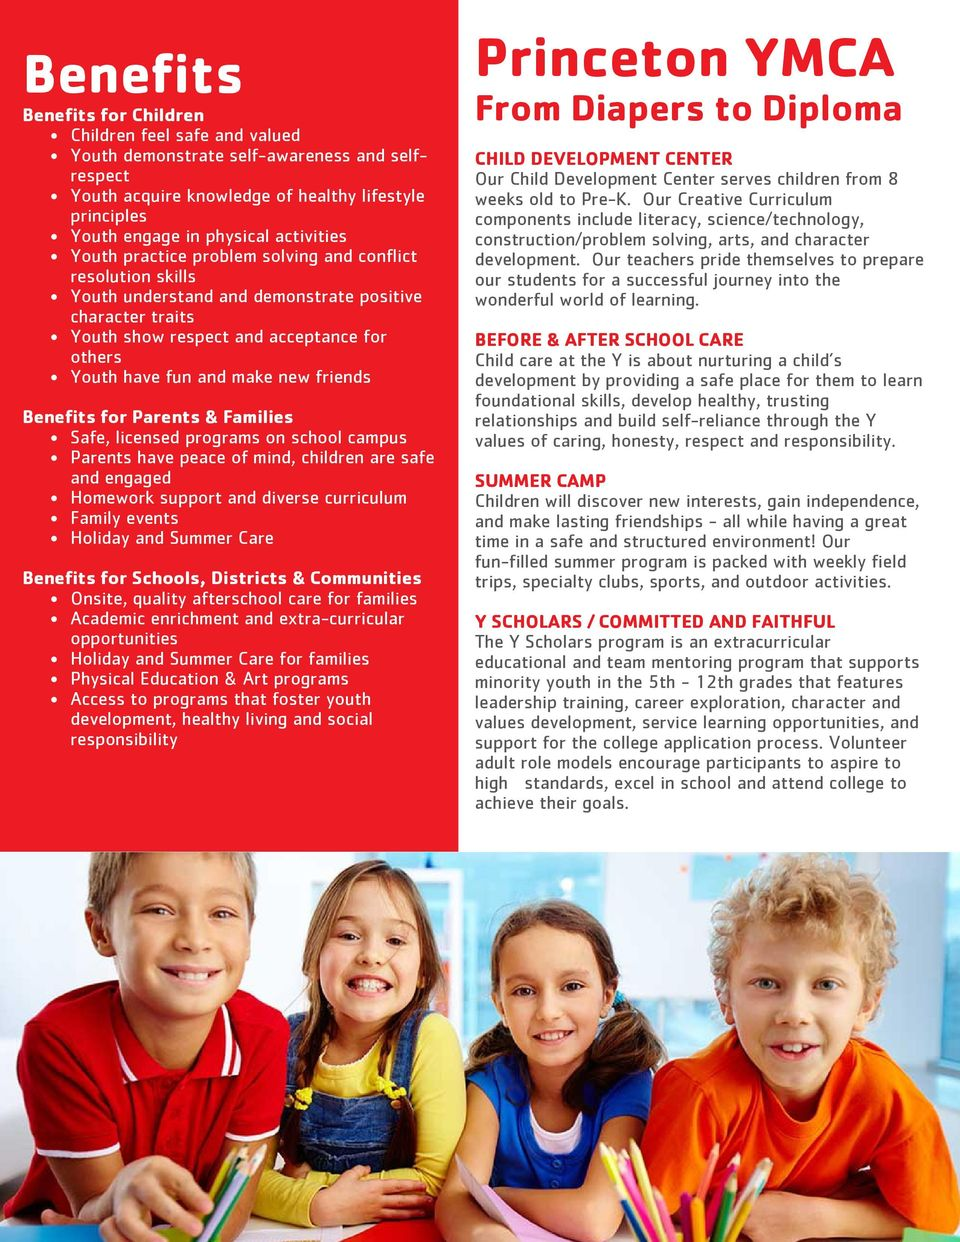 make new friends Benefits for Parents & Families Safe, licensed programs on school campus Parents have peace of mind, children are safe and engaged Homework support and diverse curriculum Family